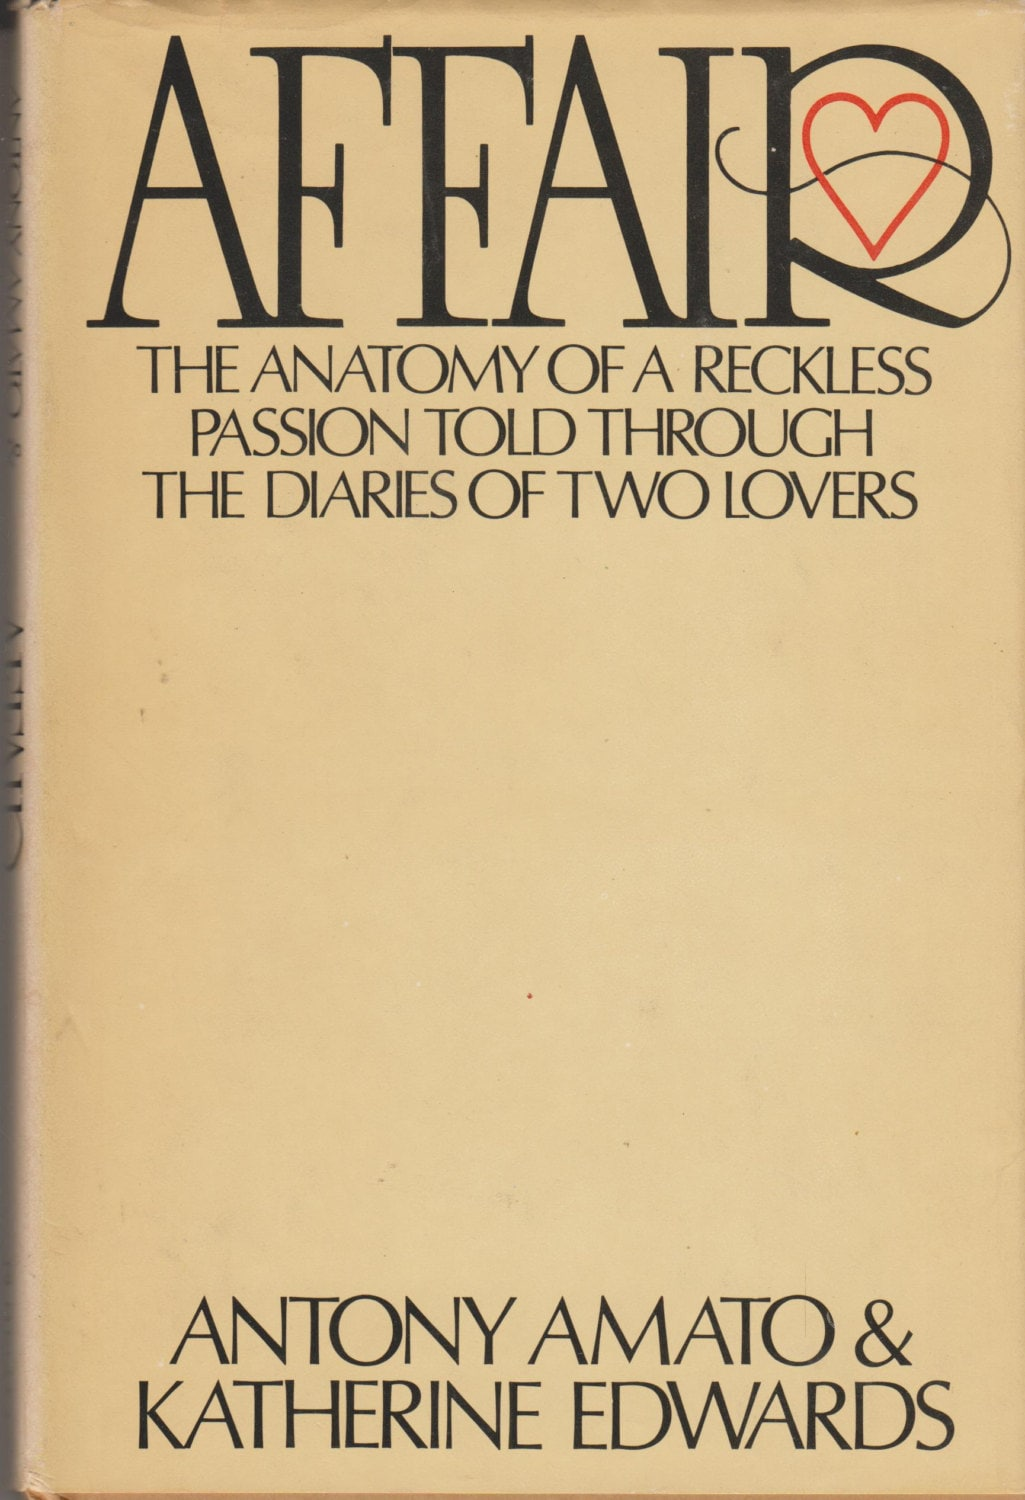 Affair - The Anatomy of a Reckless Passion Told Through The Diaries ...